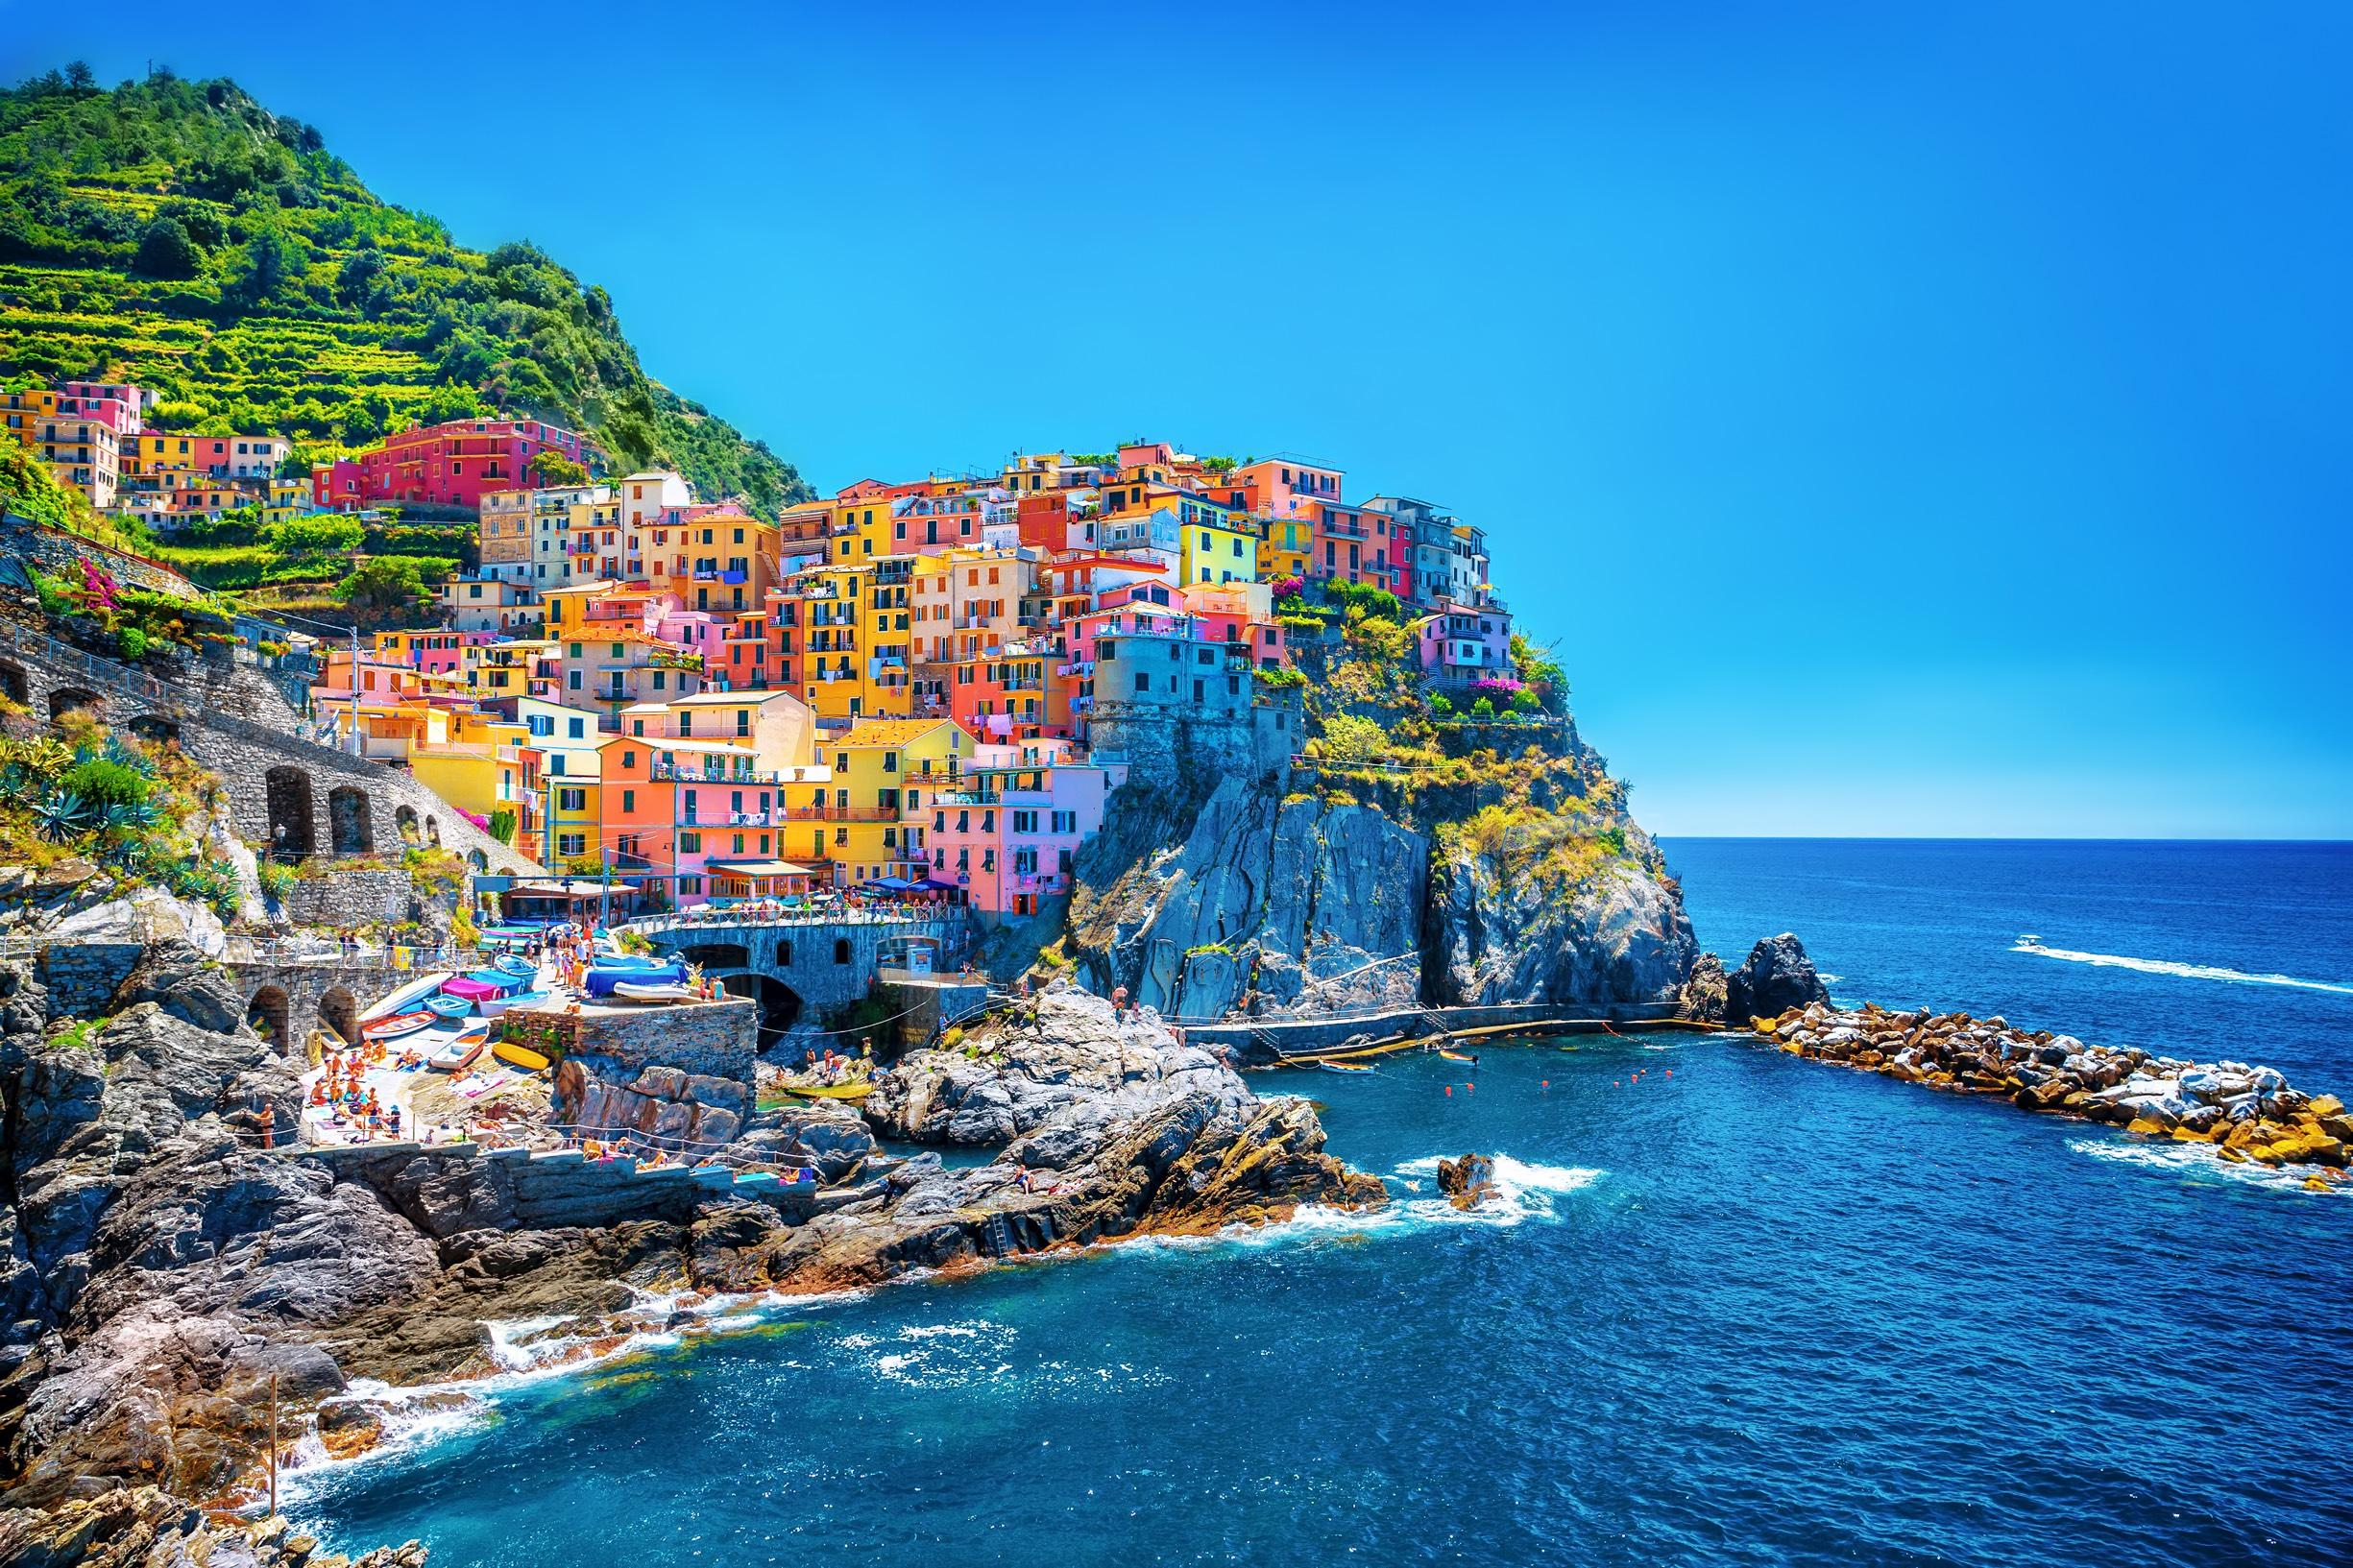 visit the four villages of Riomaggiore, Manarola, Vernazza & Corniglia